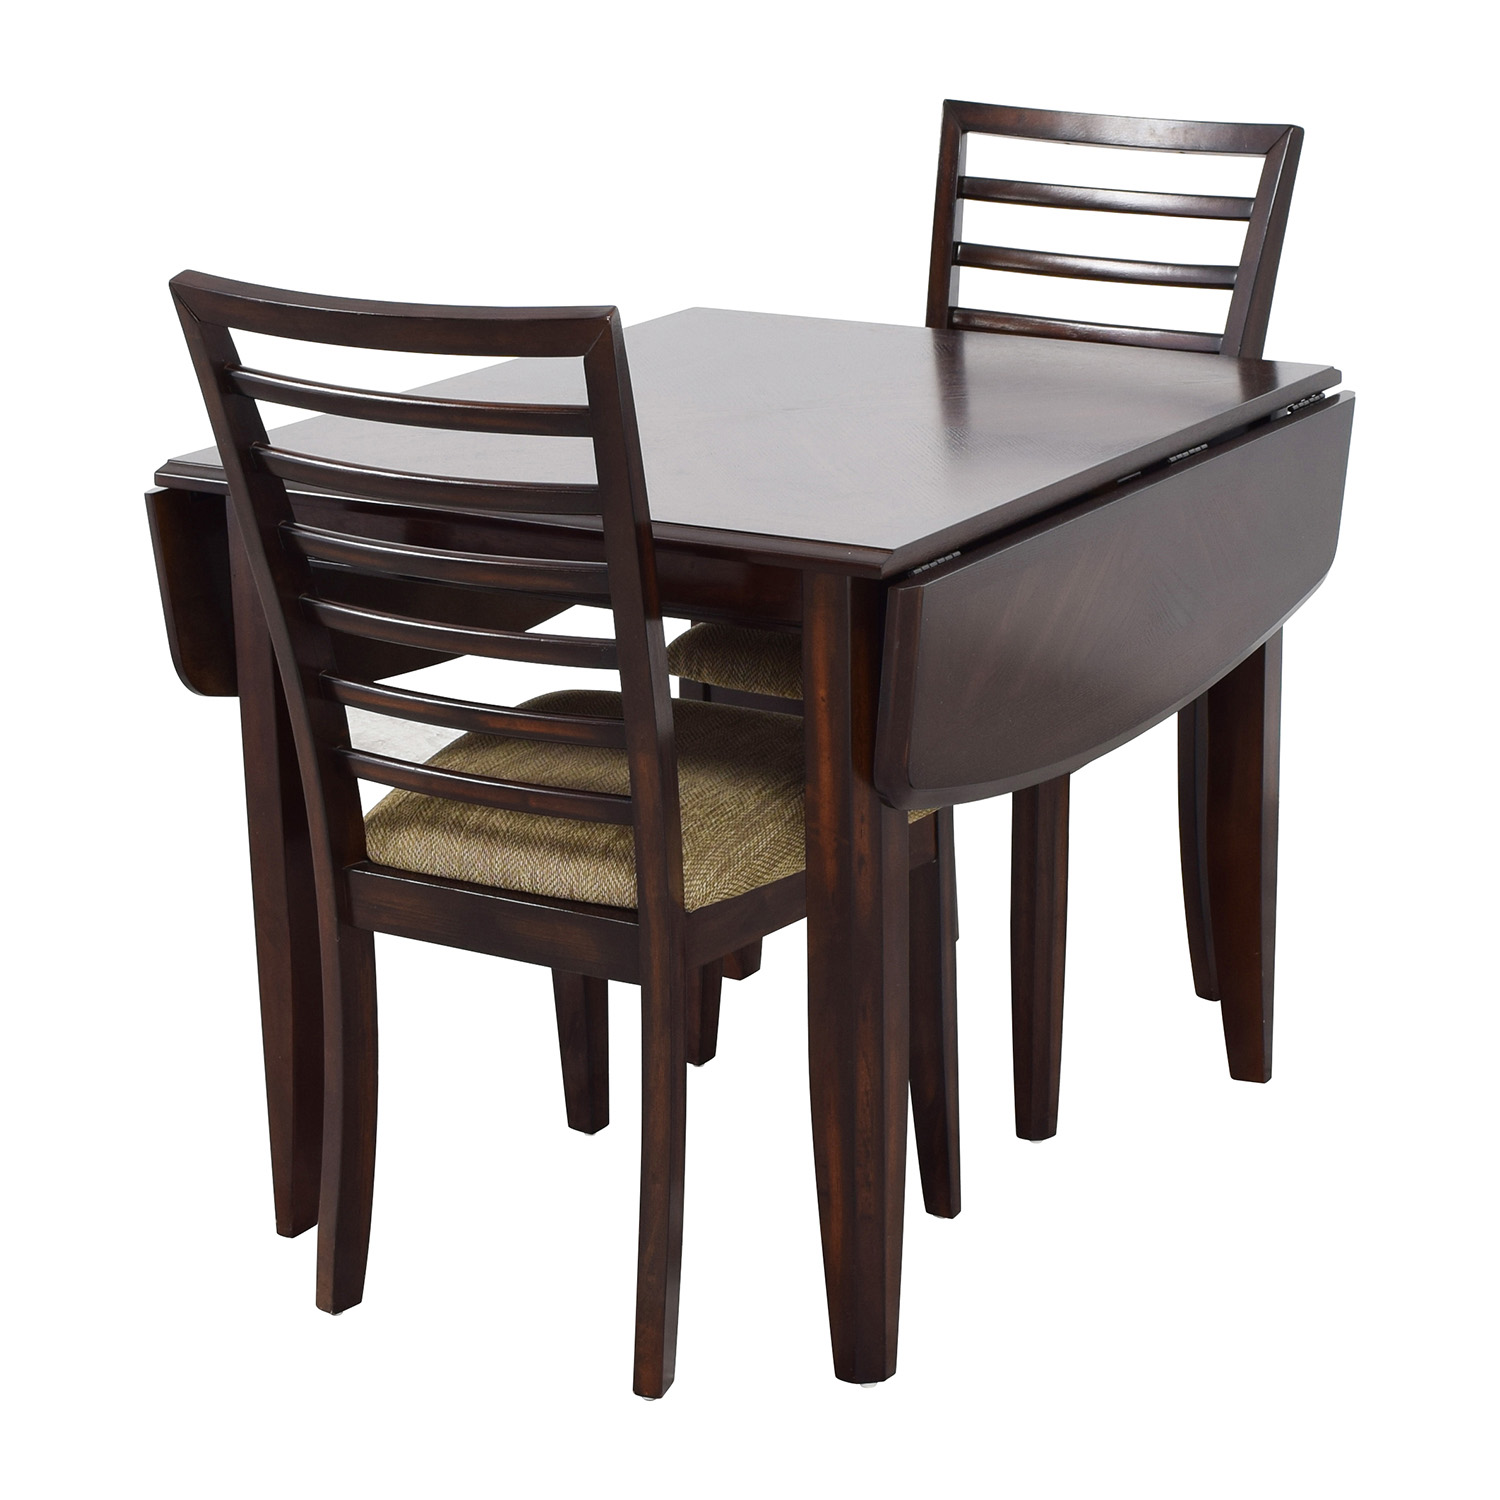 75 Off Raymour Flanigan Raymour Flanigan Chace Extendable Dining Set Tables